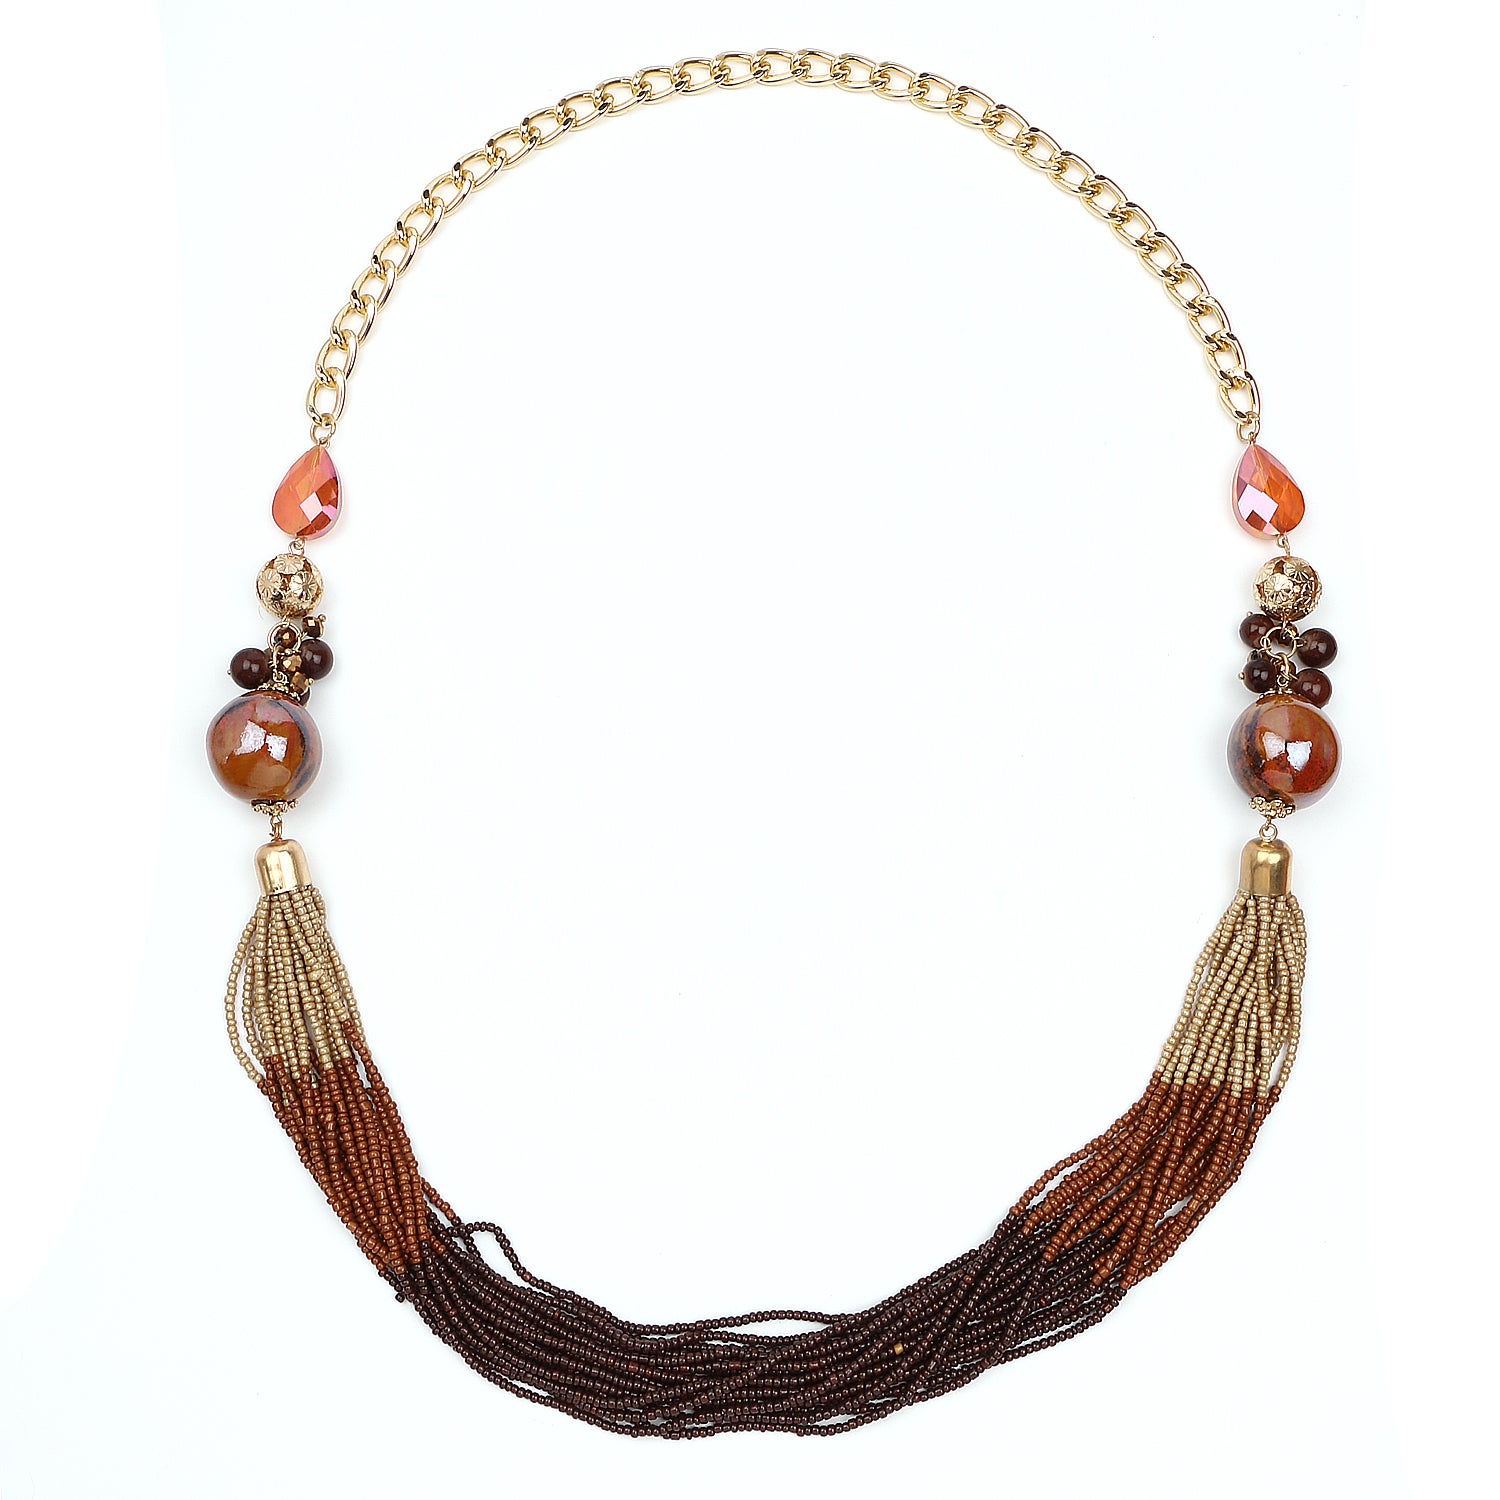 Liliana Bella Goldplated Handmade Brown Beaded Multicolor...